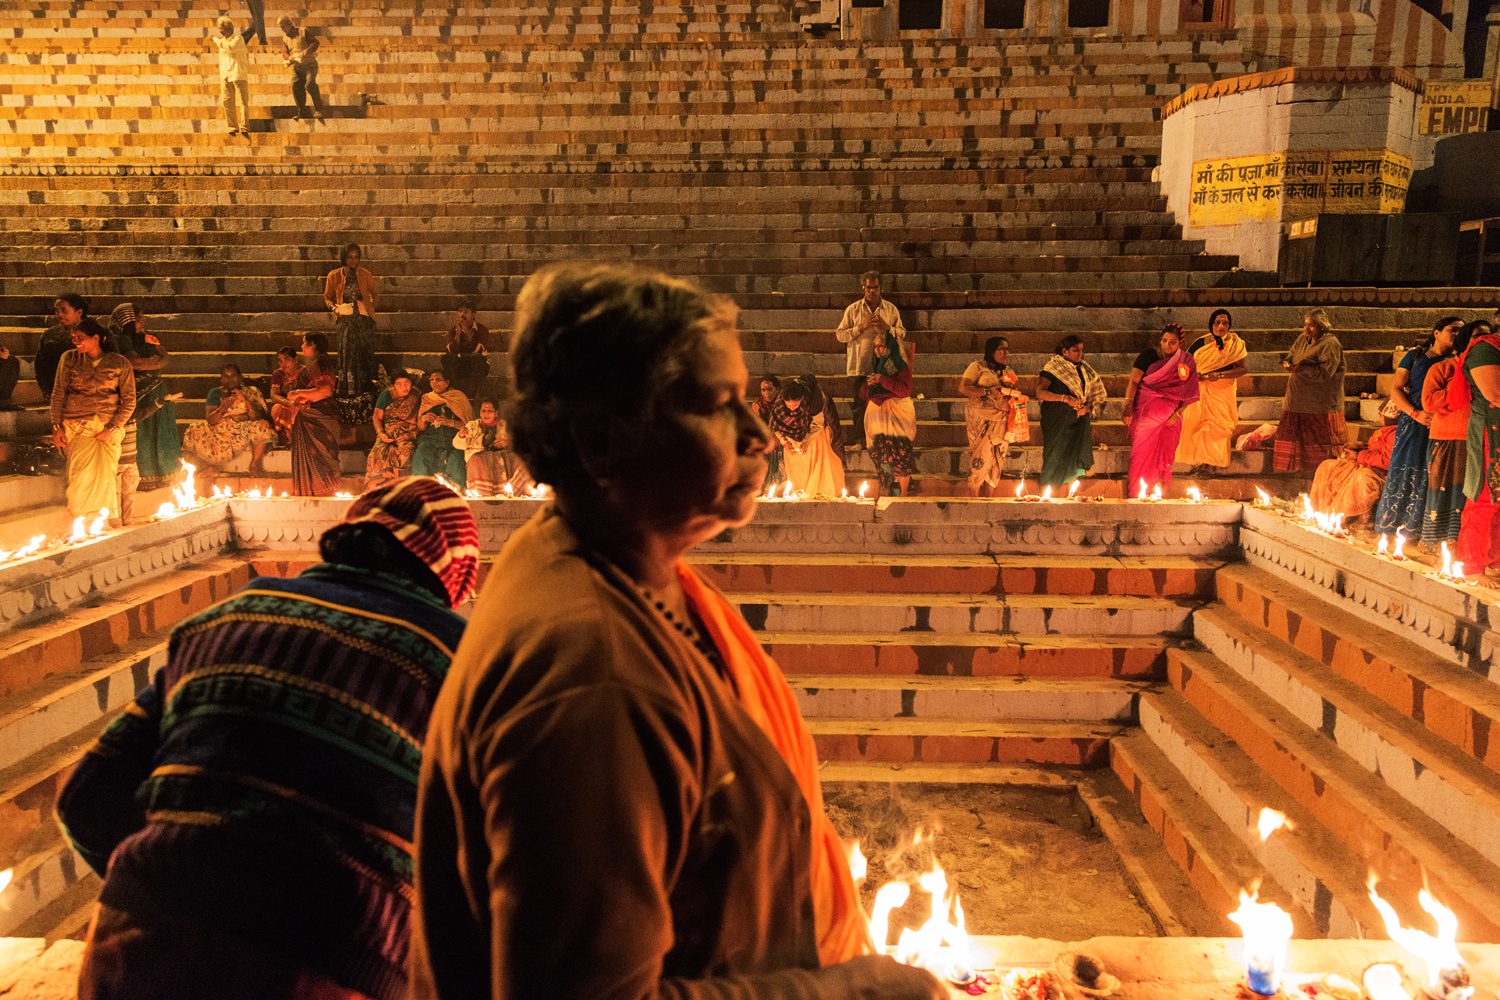 Women gather for evening prayer on a popular Varanasi Ghat by the River Ganga, in Uttar Pradesh India.